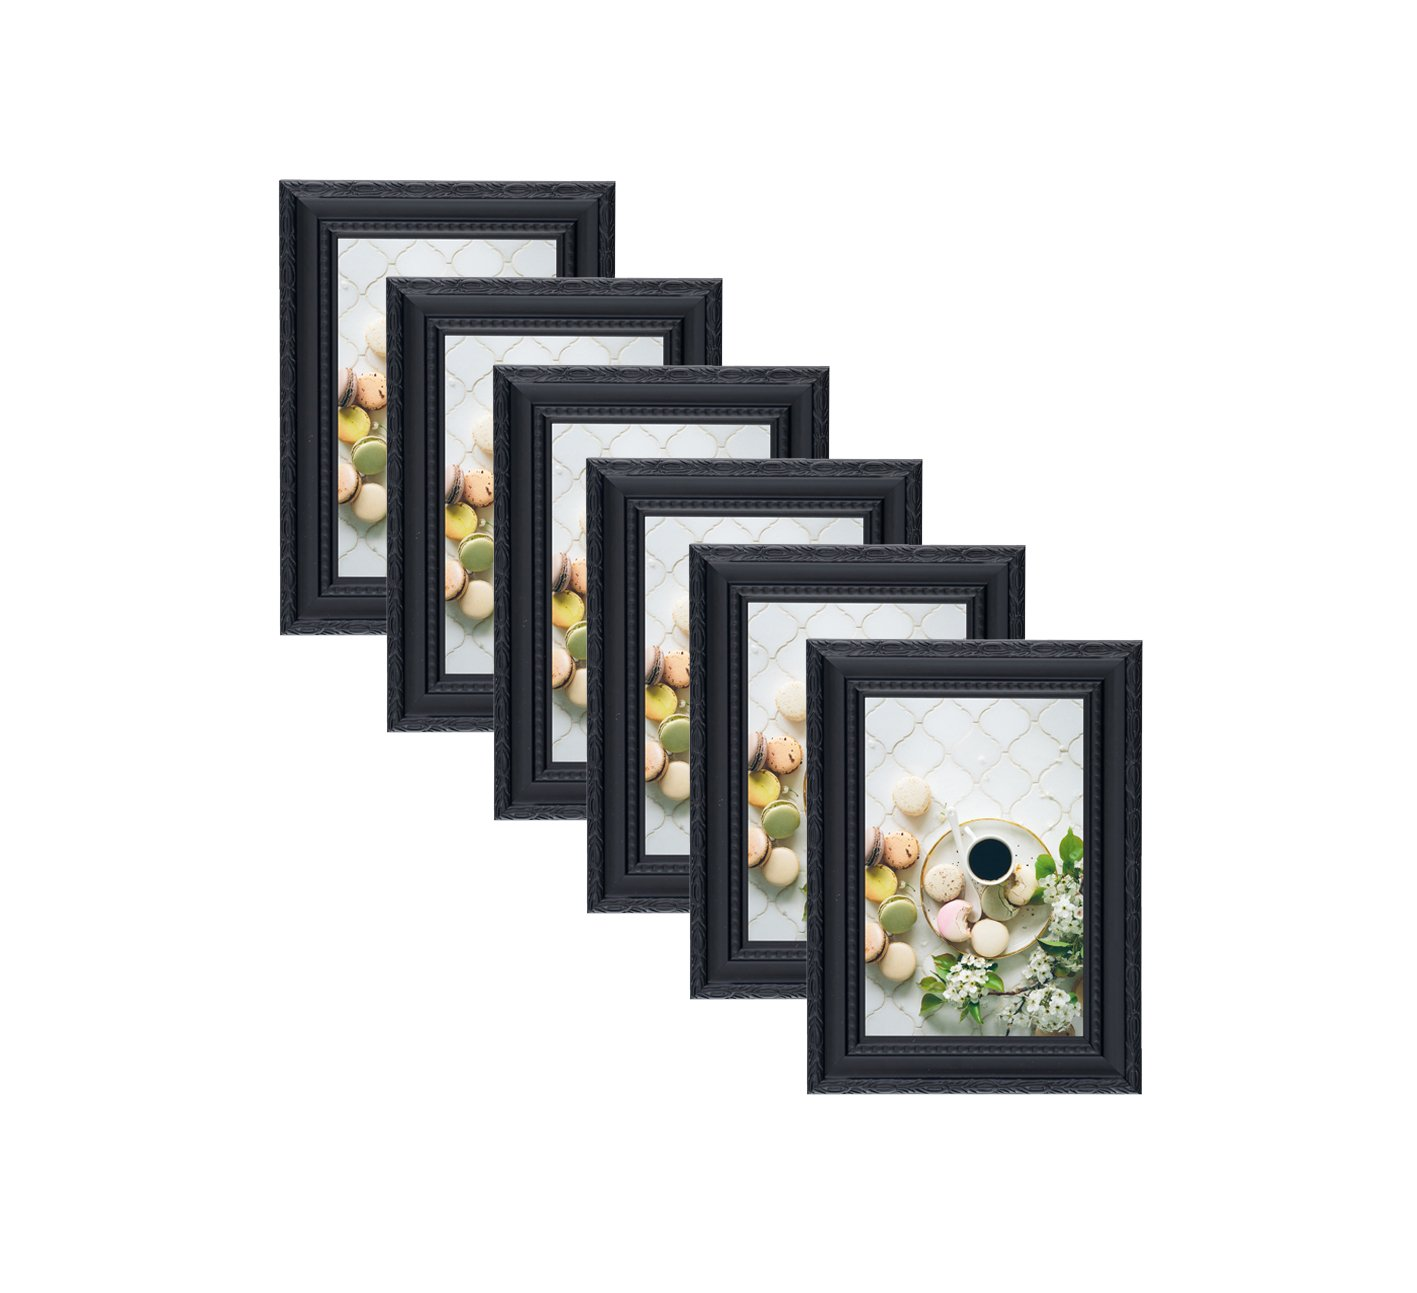 84ccdd977c Get Quotations · Unique Plated Beaded Border Black Picture Frames (6 pc)  Display with Photo Glass Front